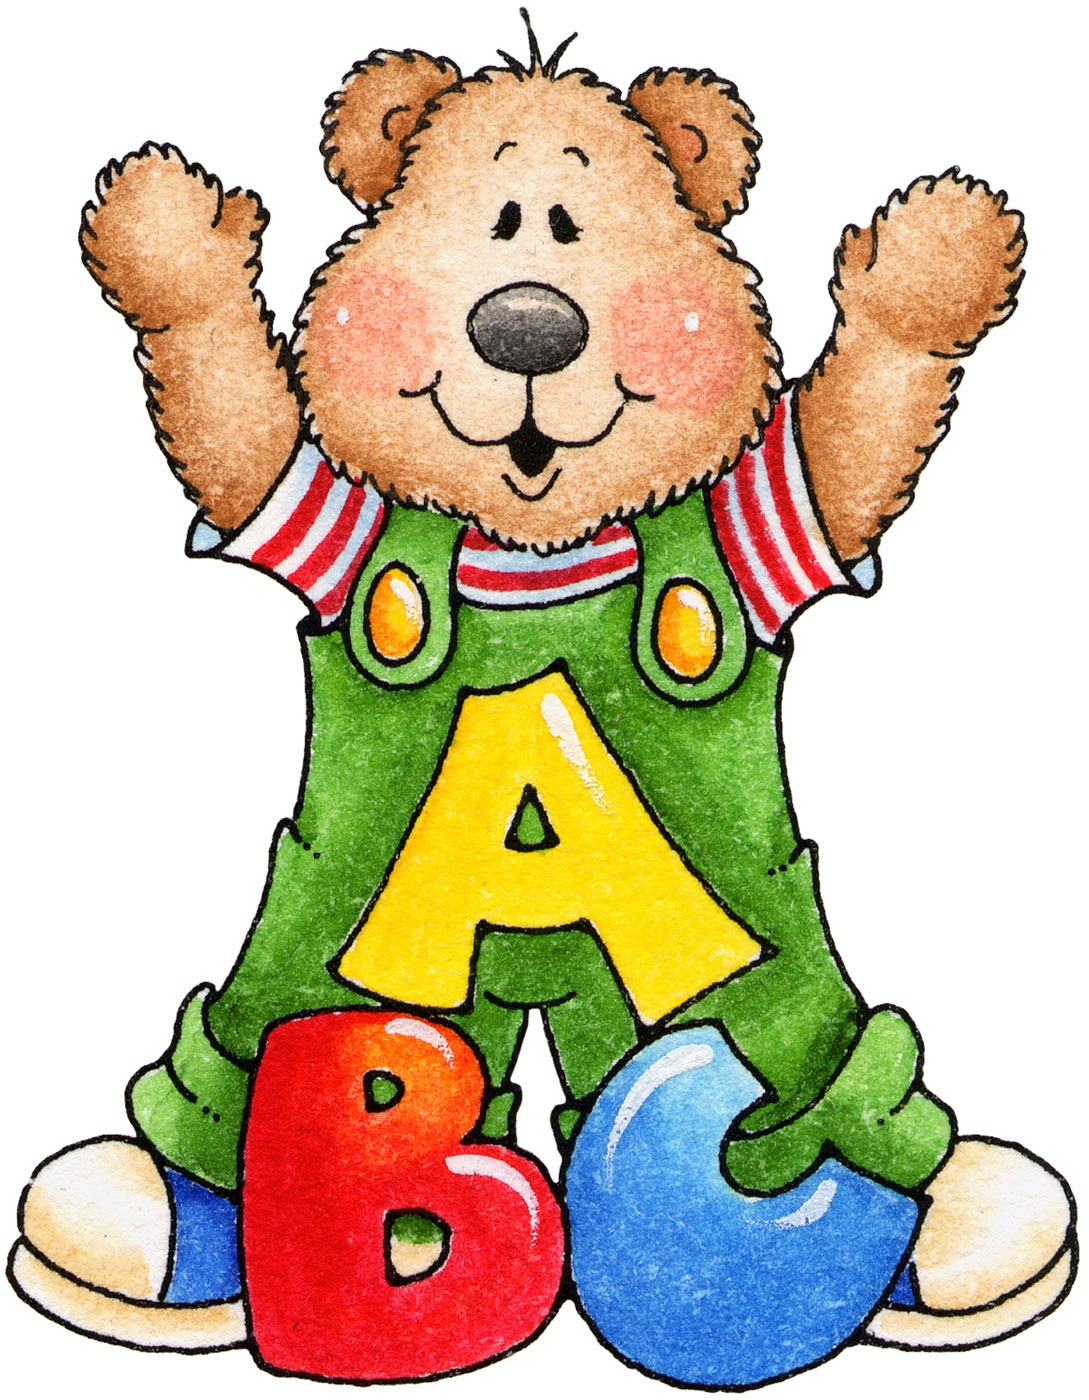 School clipart abc jpg transparent library 78 Best images about school on Pinterest   Classroom signs ... jpg transparent library